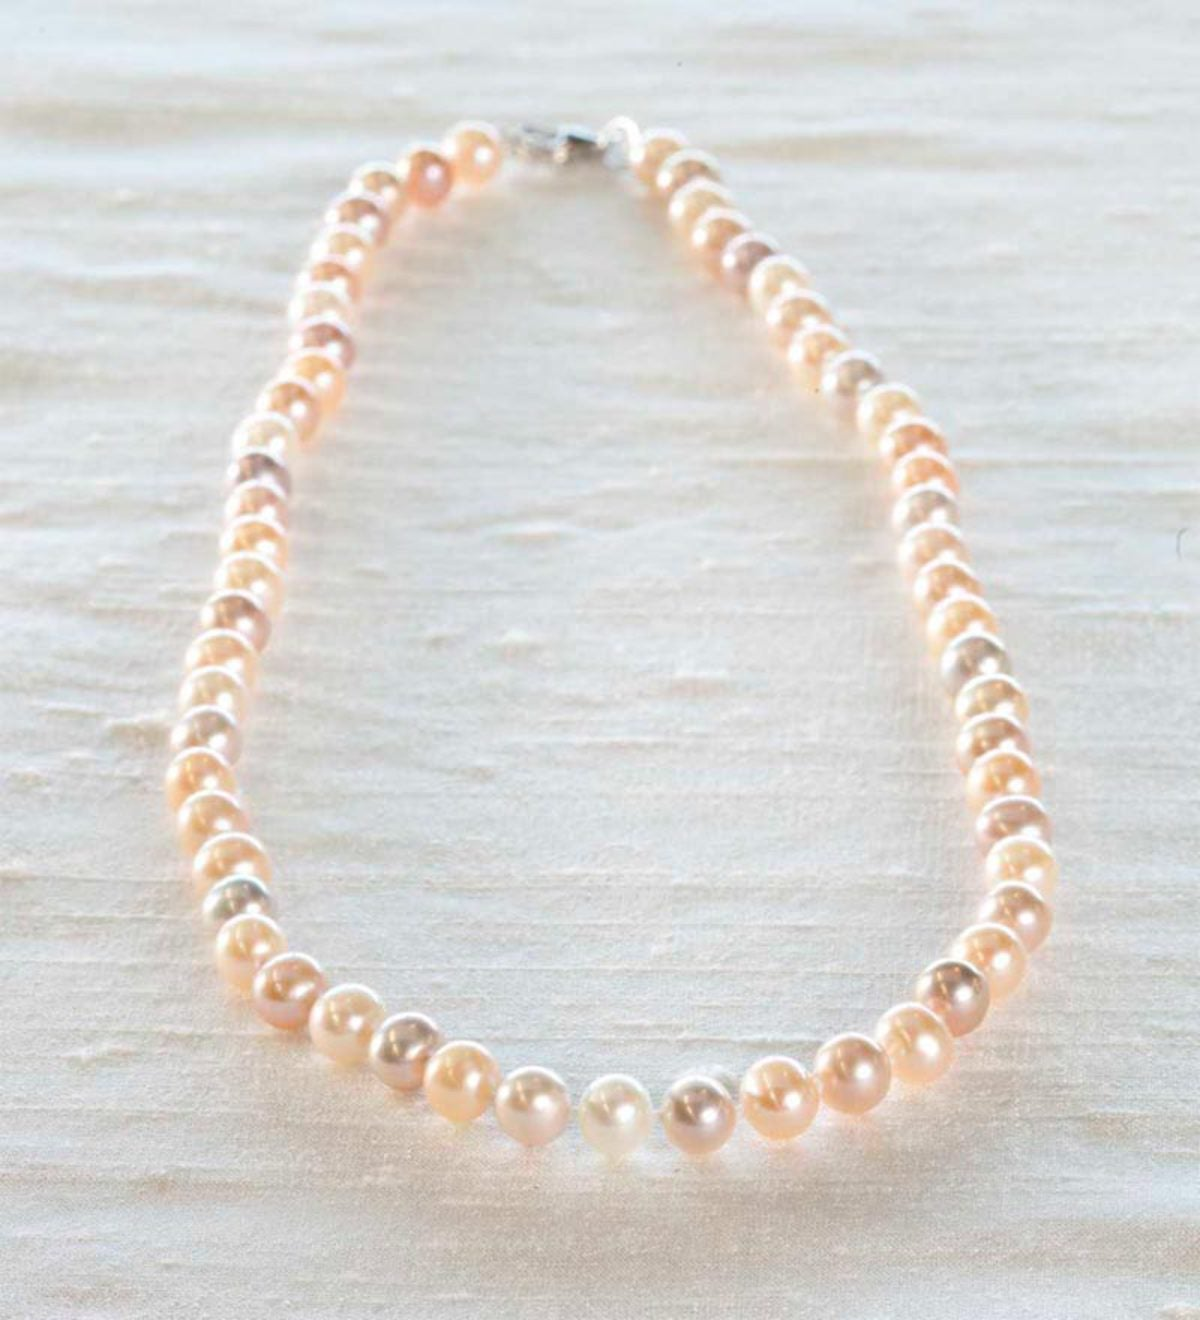 High Lustrous Near Round Freshwater Pearl Necklace - Natural Multi-Color